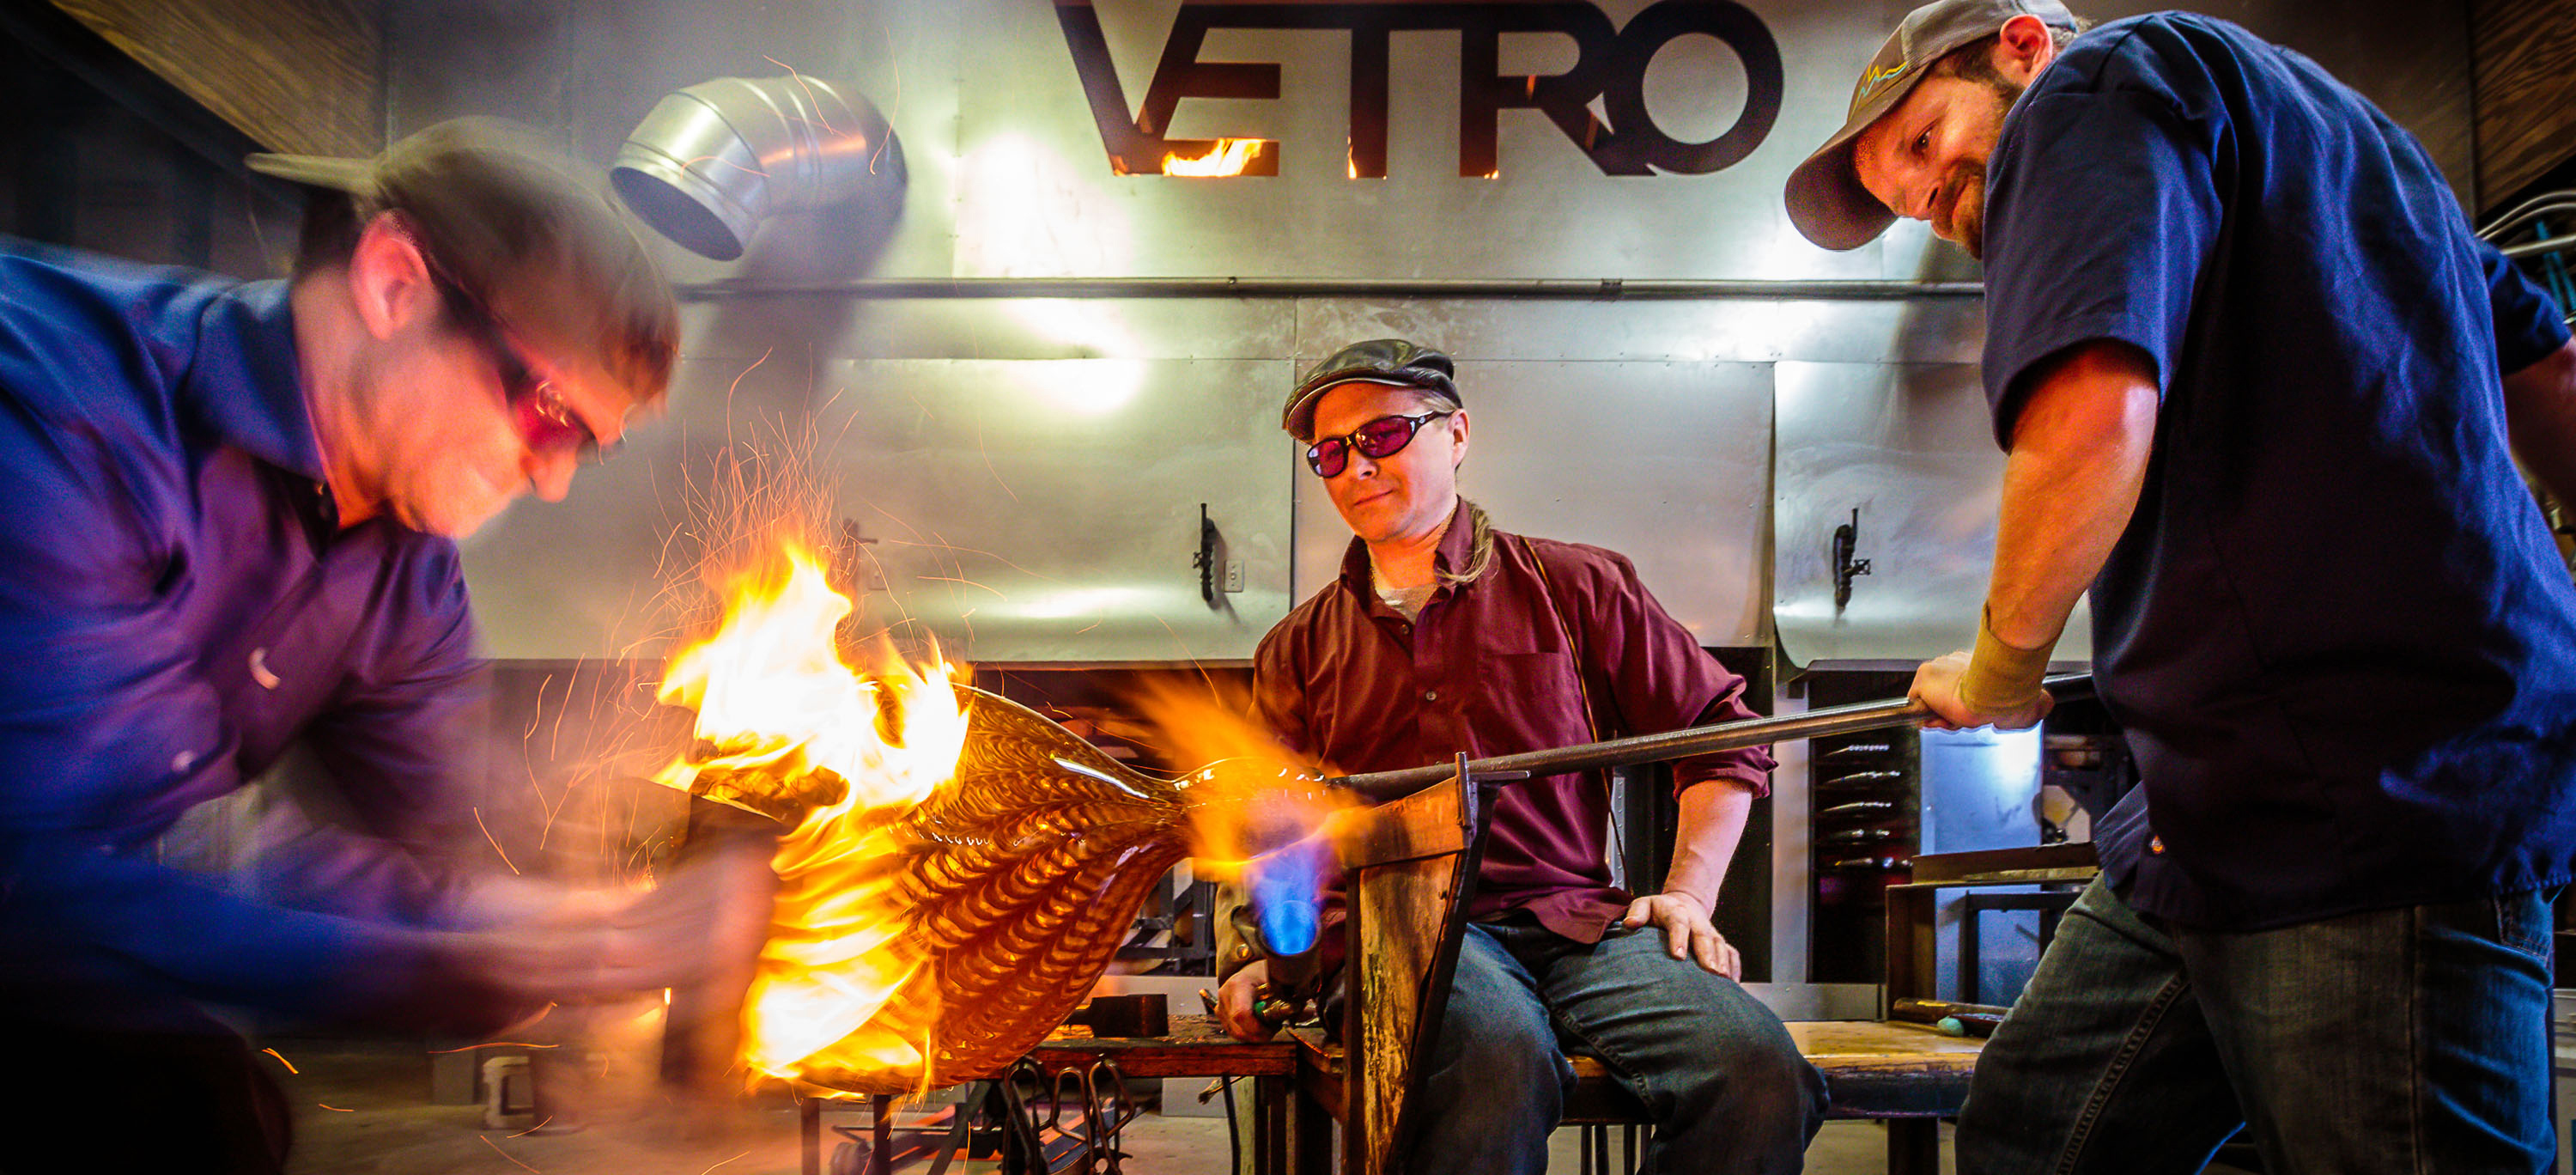 Vetro-Glassblowers-002a-low-res-slider